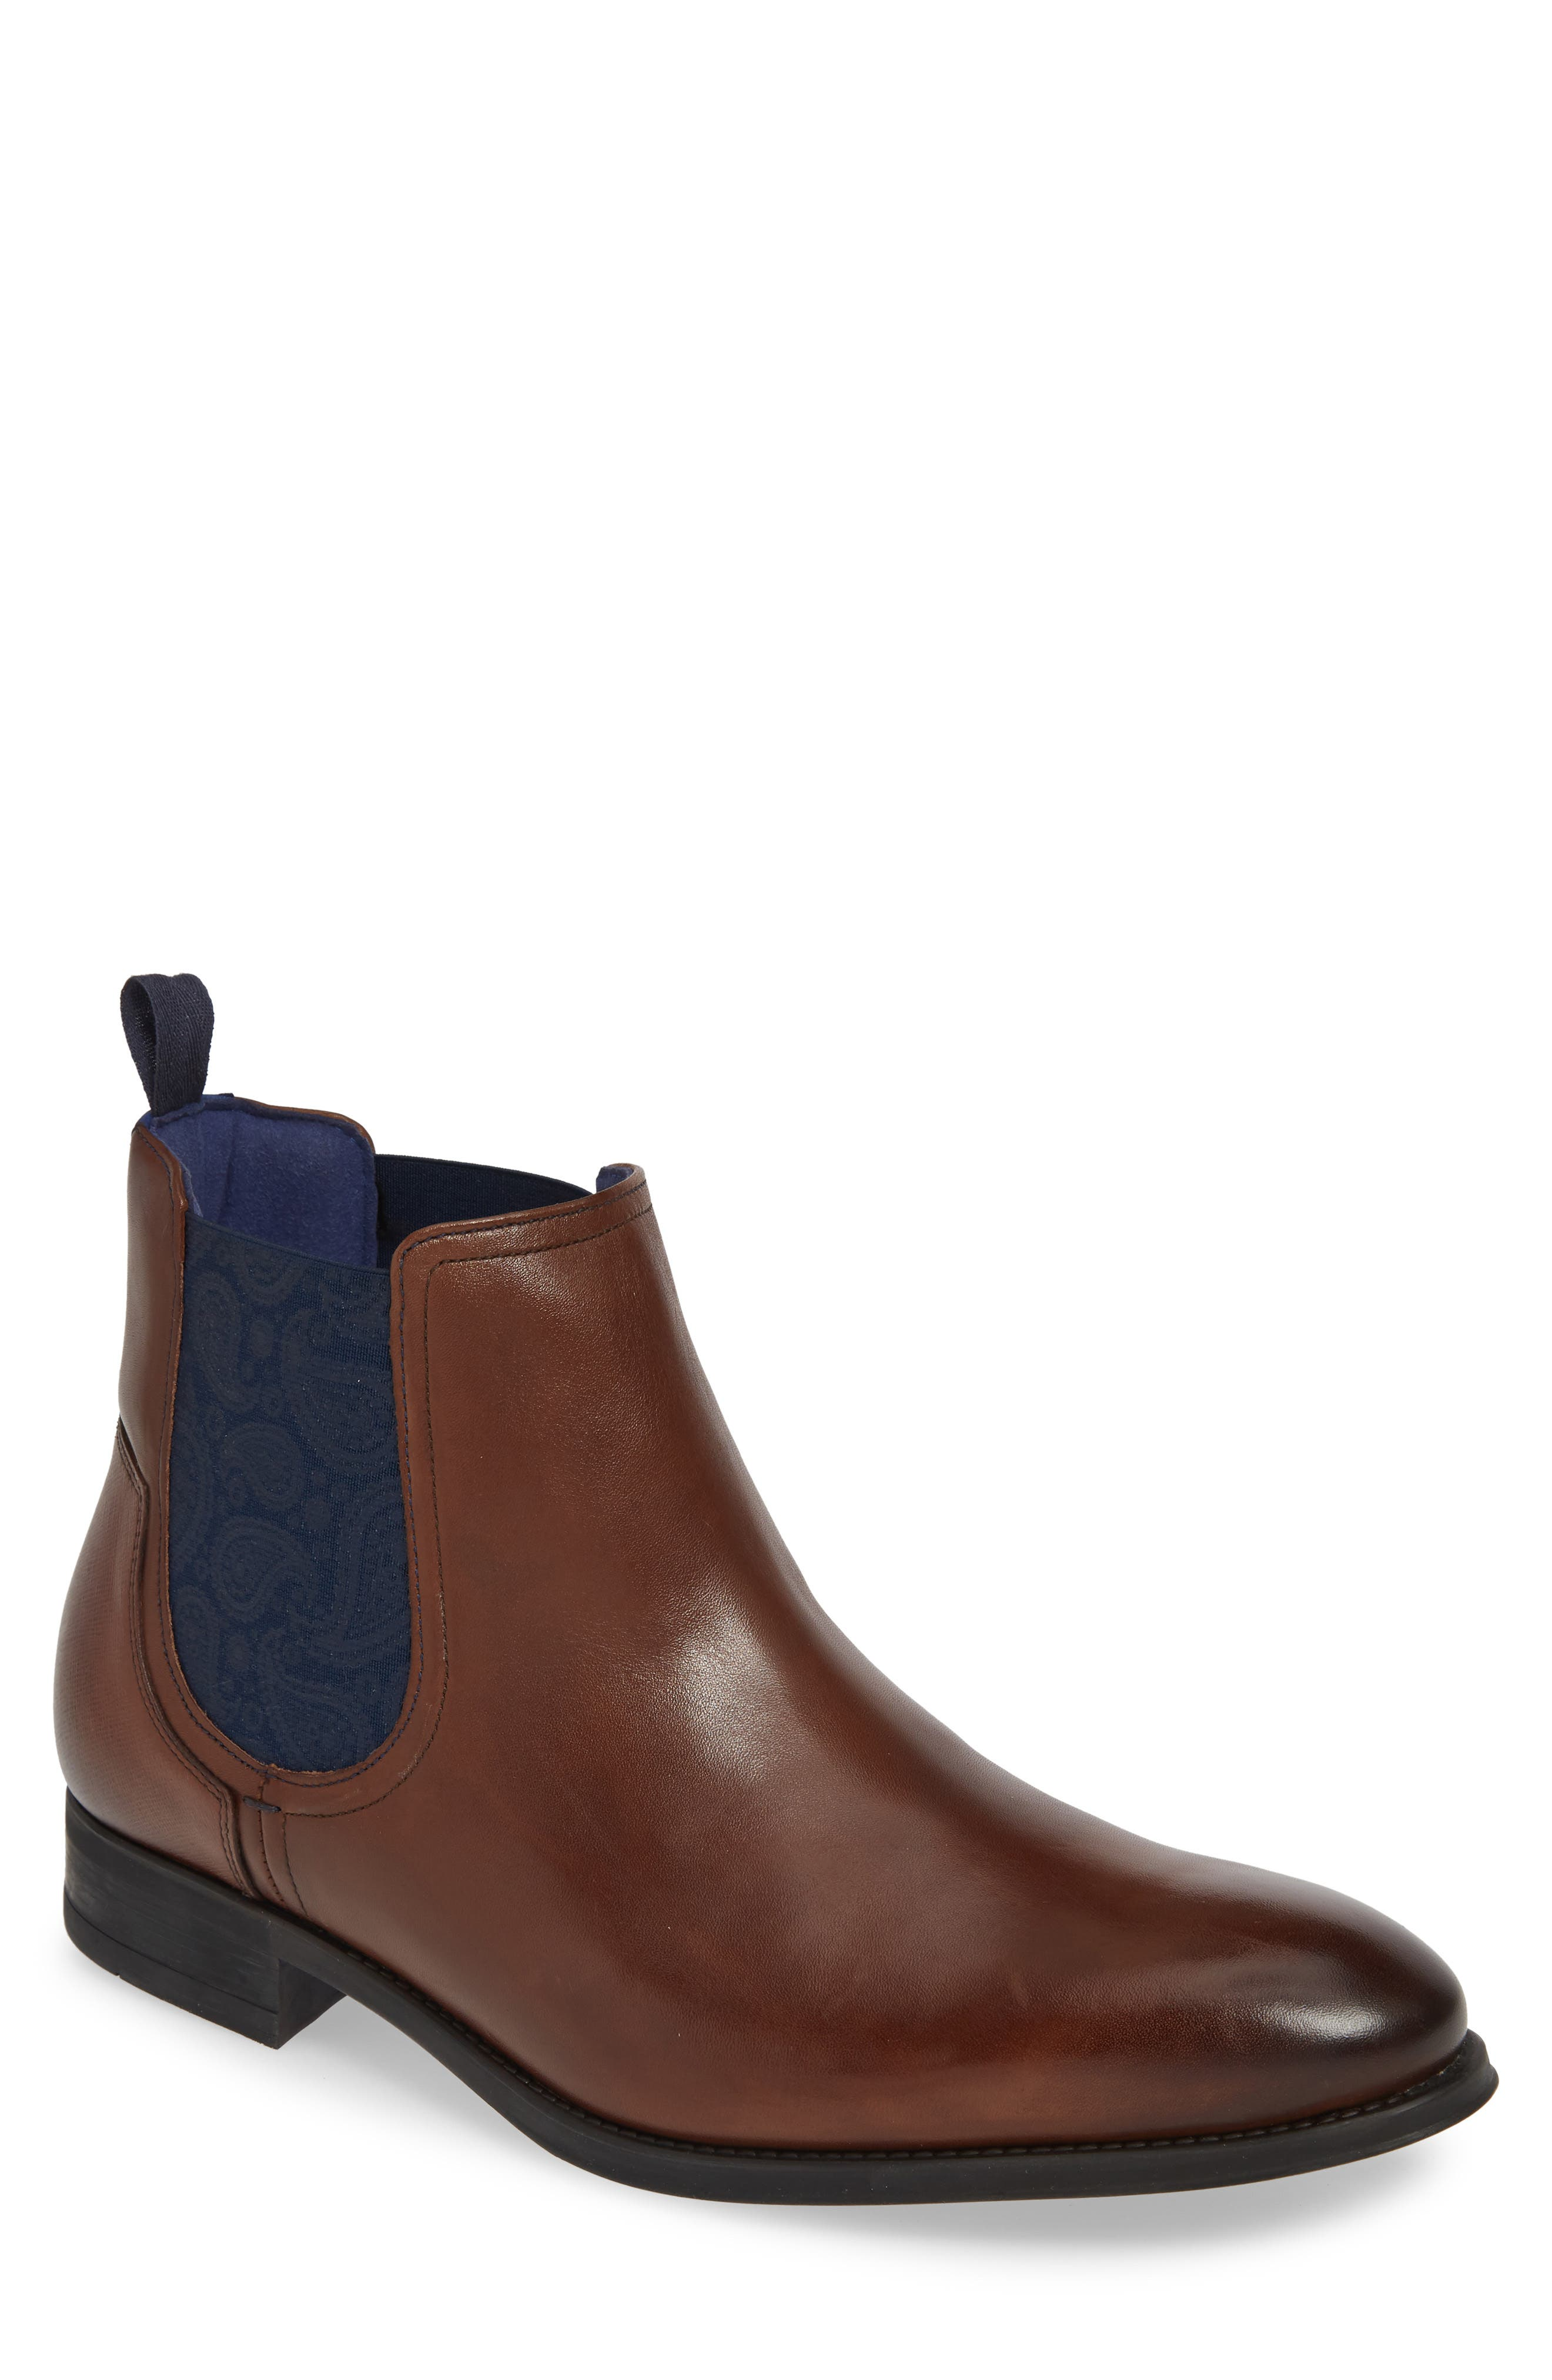 Ted Baker London Travic Mid Chelsea Boot, Brown